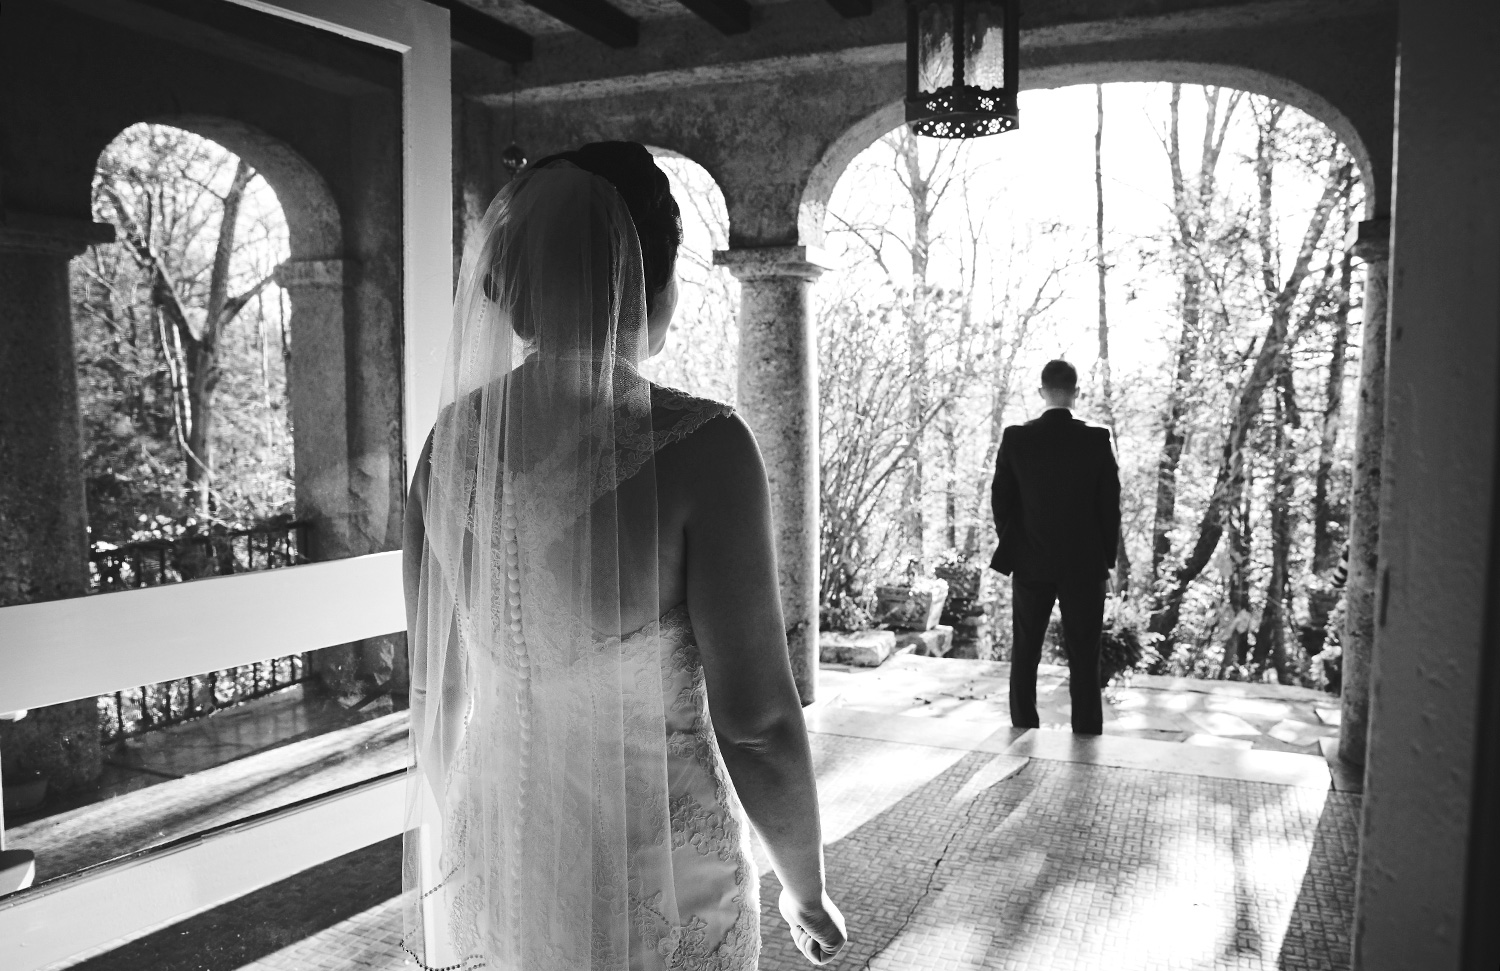 161119_ArrowParkLake&LodgeWedding_By_BriJohnsonWeddings_0047.jpg